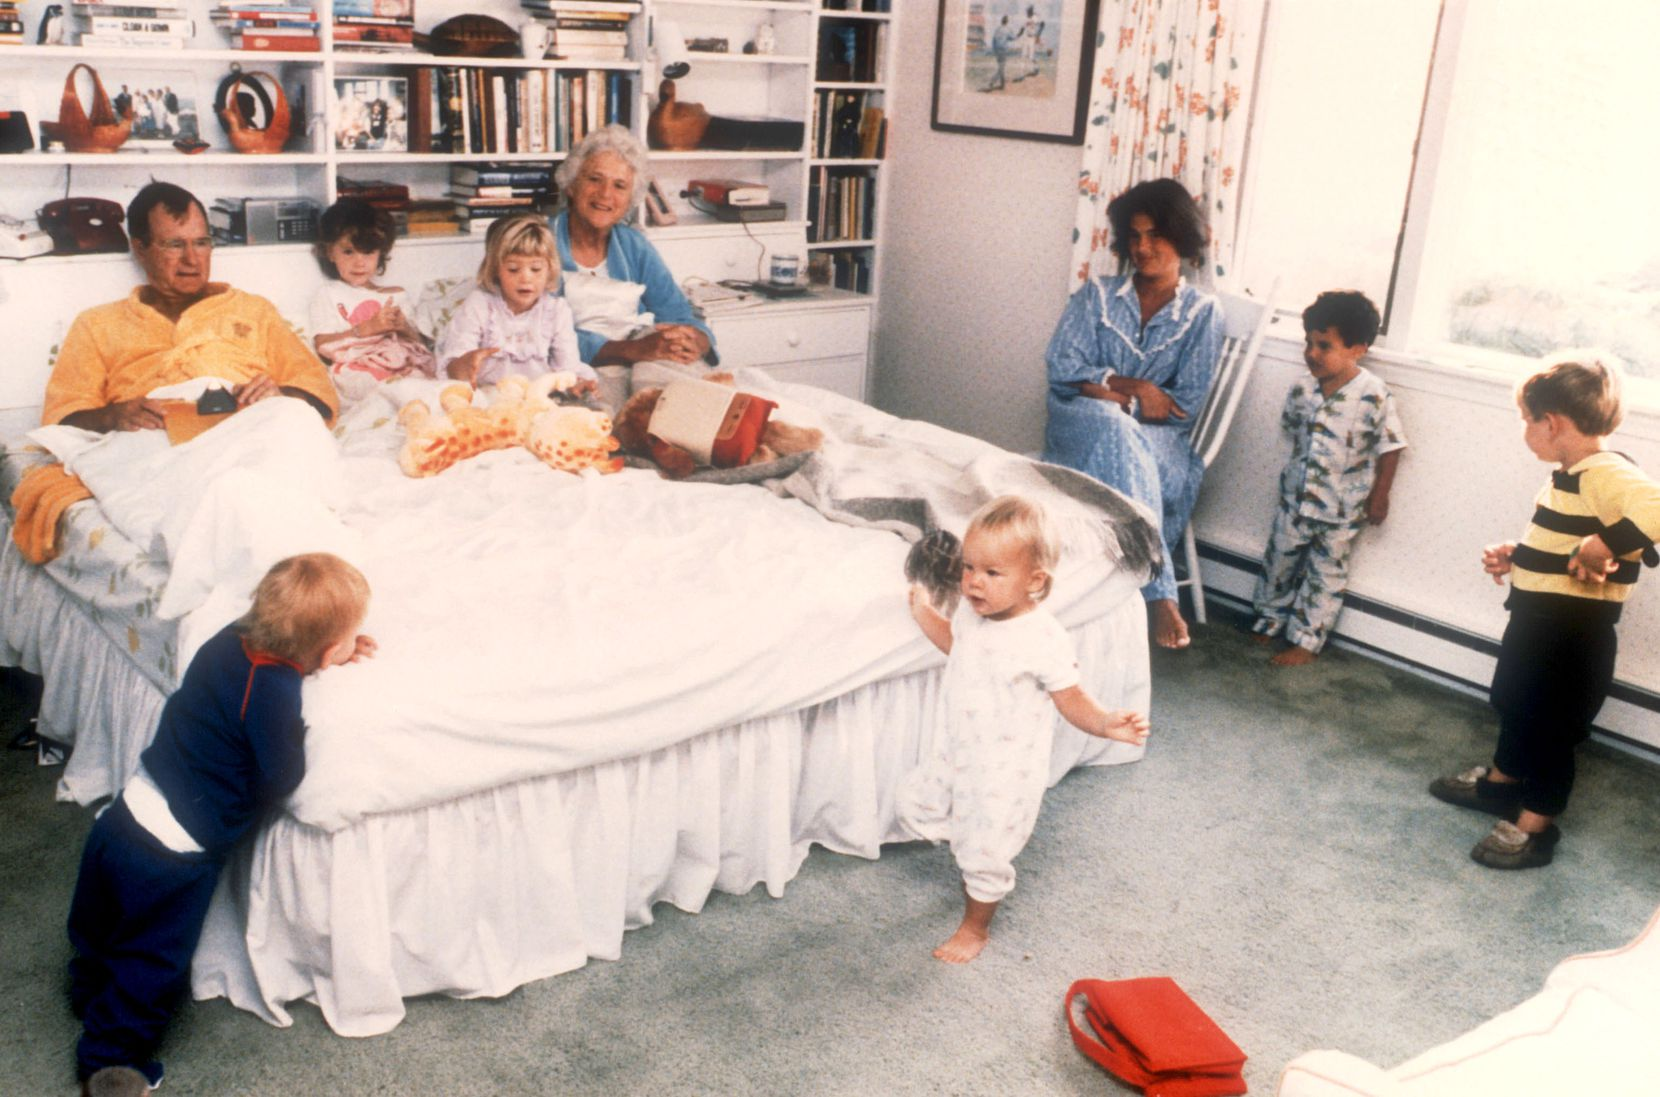 1987: Vice President George H.W. Bush and his wife Barbara are joined in their bedroom by six of their grandchildren at the family retreat in Kennebunkport, Maine. The spontaneous moment, shot by George H.W. Bush's personal photographer David Valdez, for use in LIFE Magazine, became an iconic photos of the Bush family. Valdez later became director of the White House photo office under Bush in 1988.